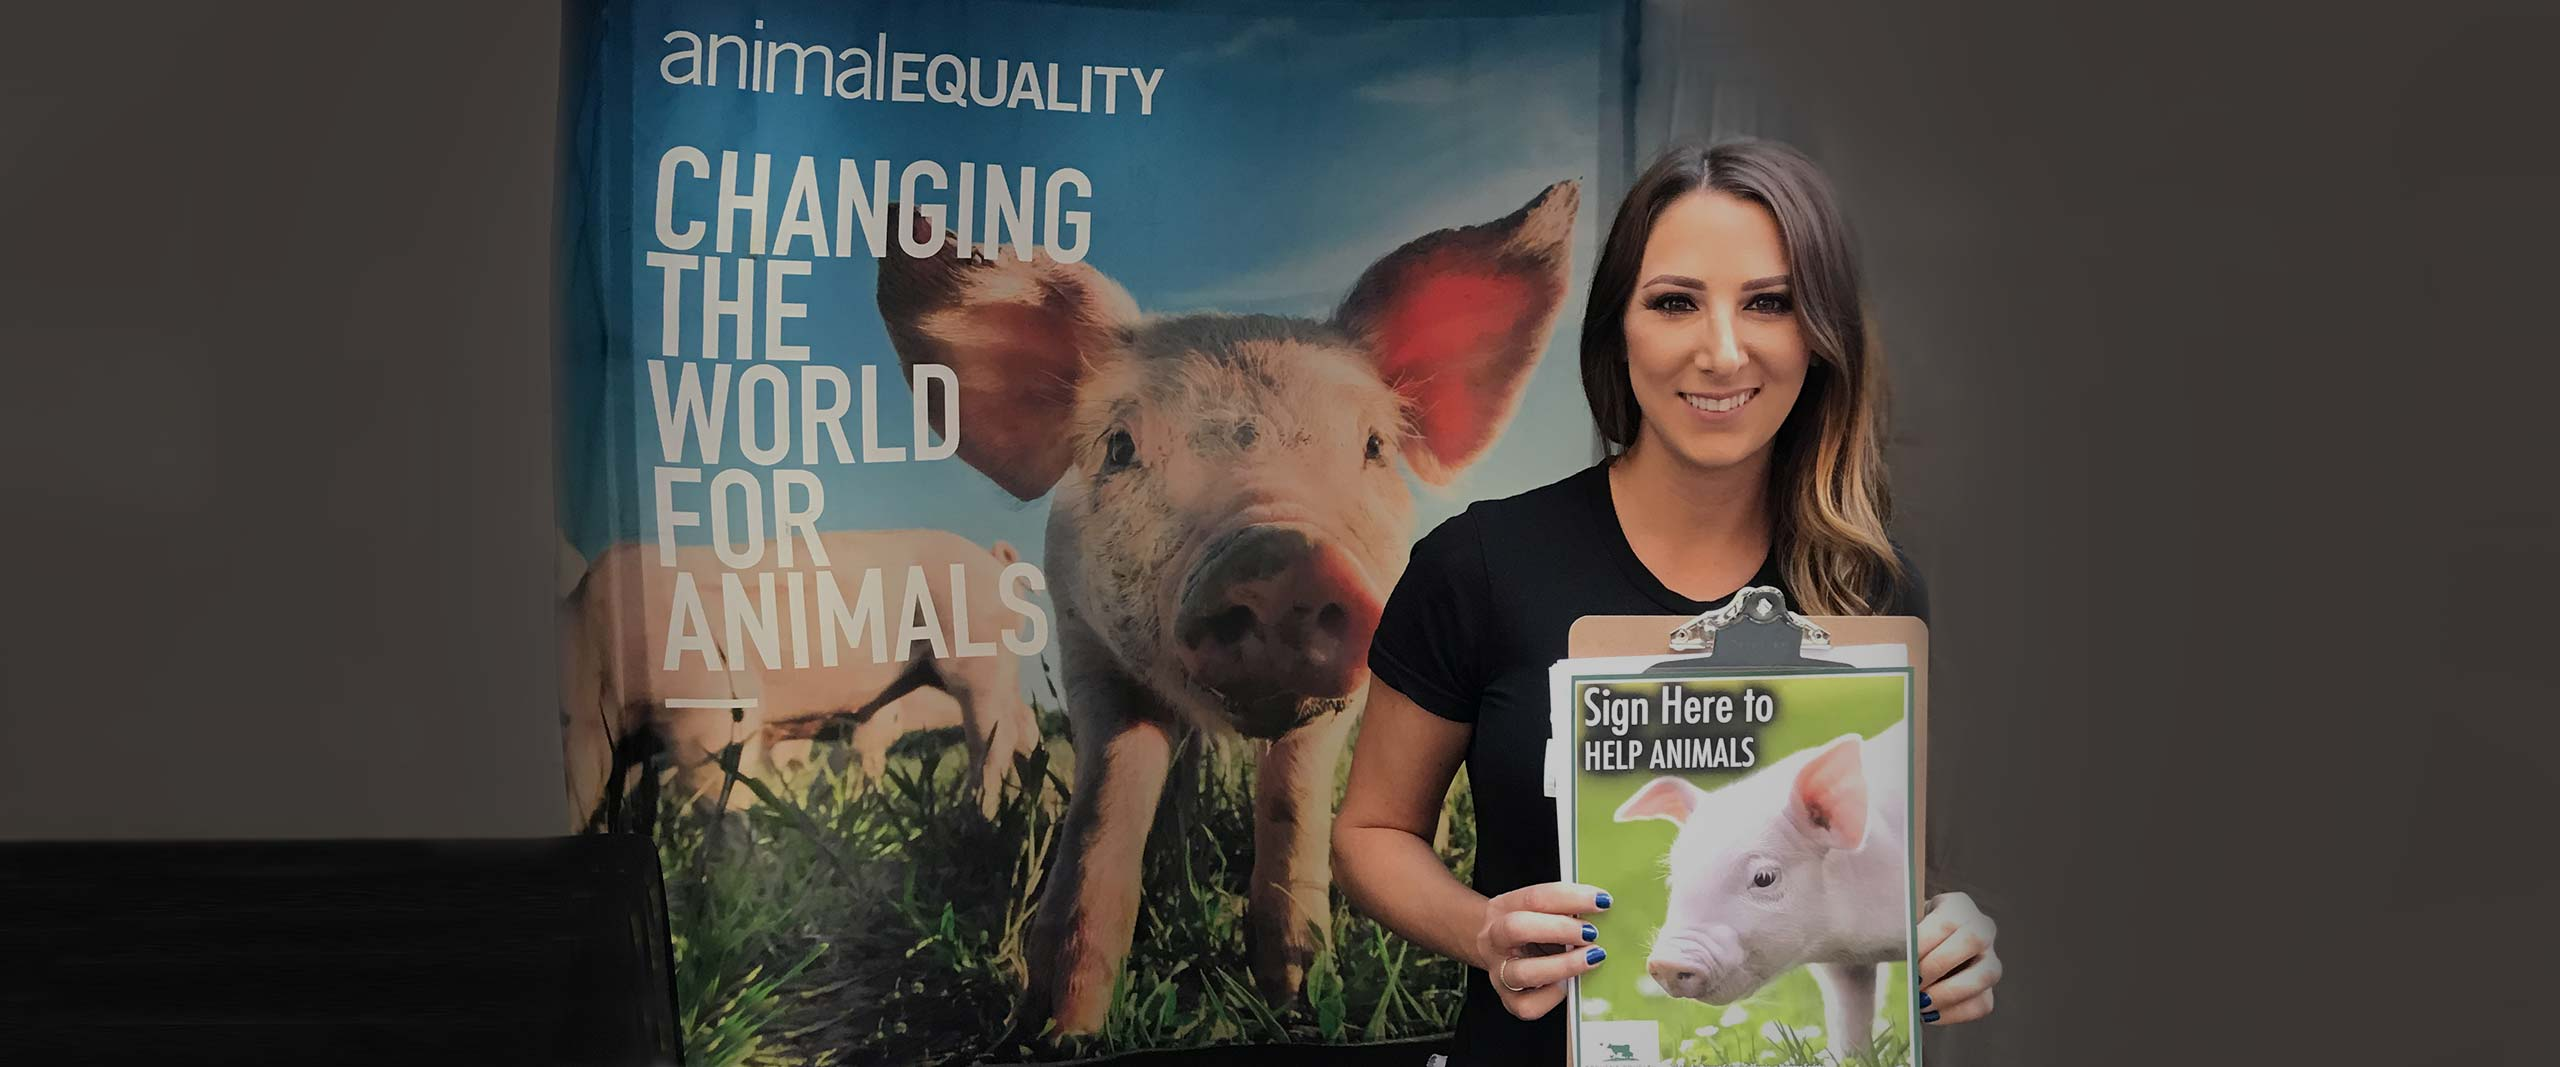 Californians at Work to Protect Farmed Animals | Animal Equality